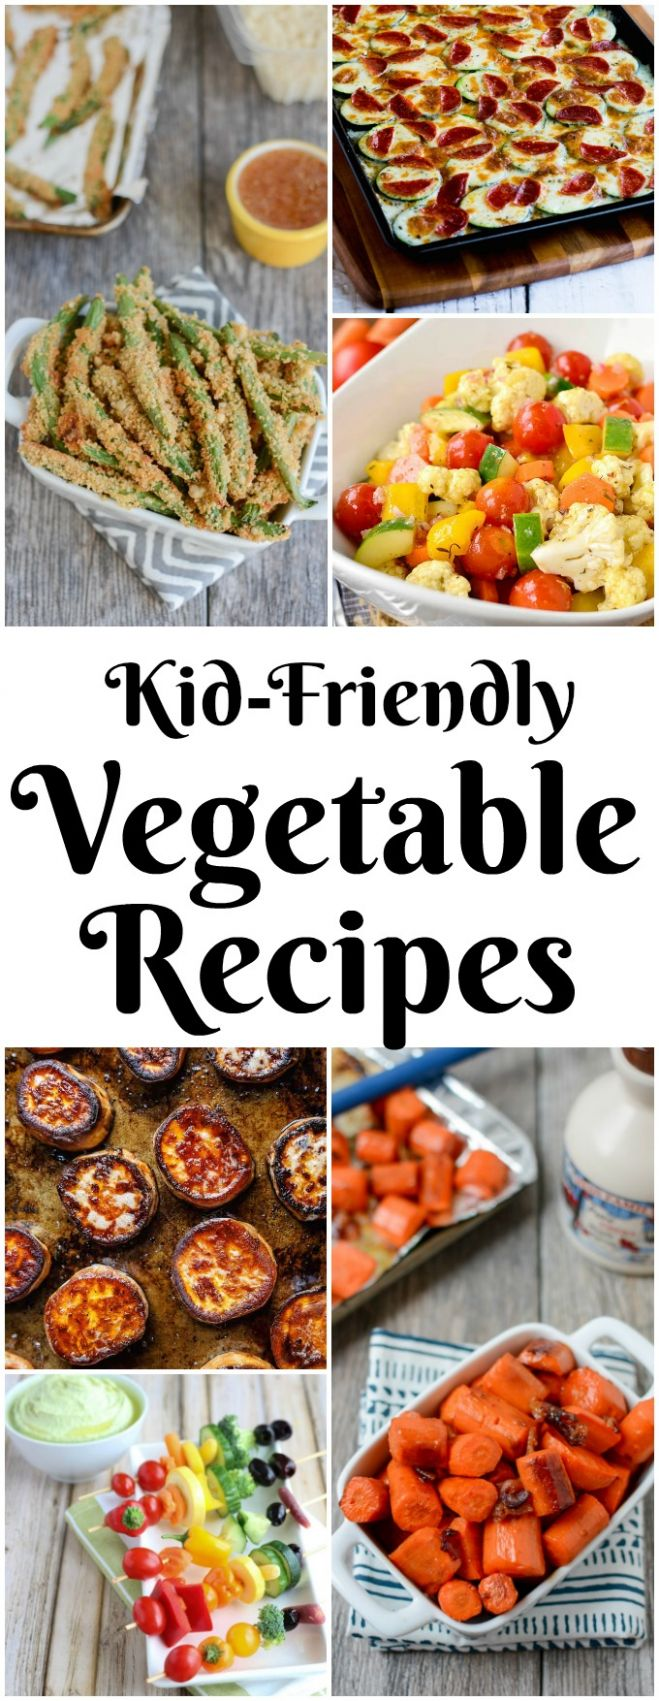 11 Kid-Friendly Vegetable Recipes - Vegetable Recipes Toddlers